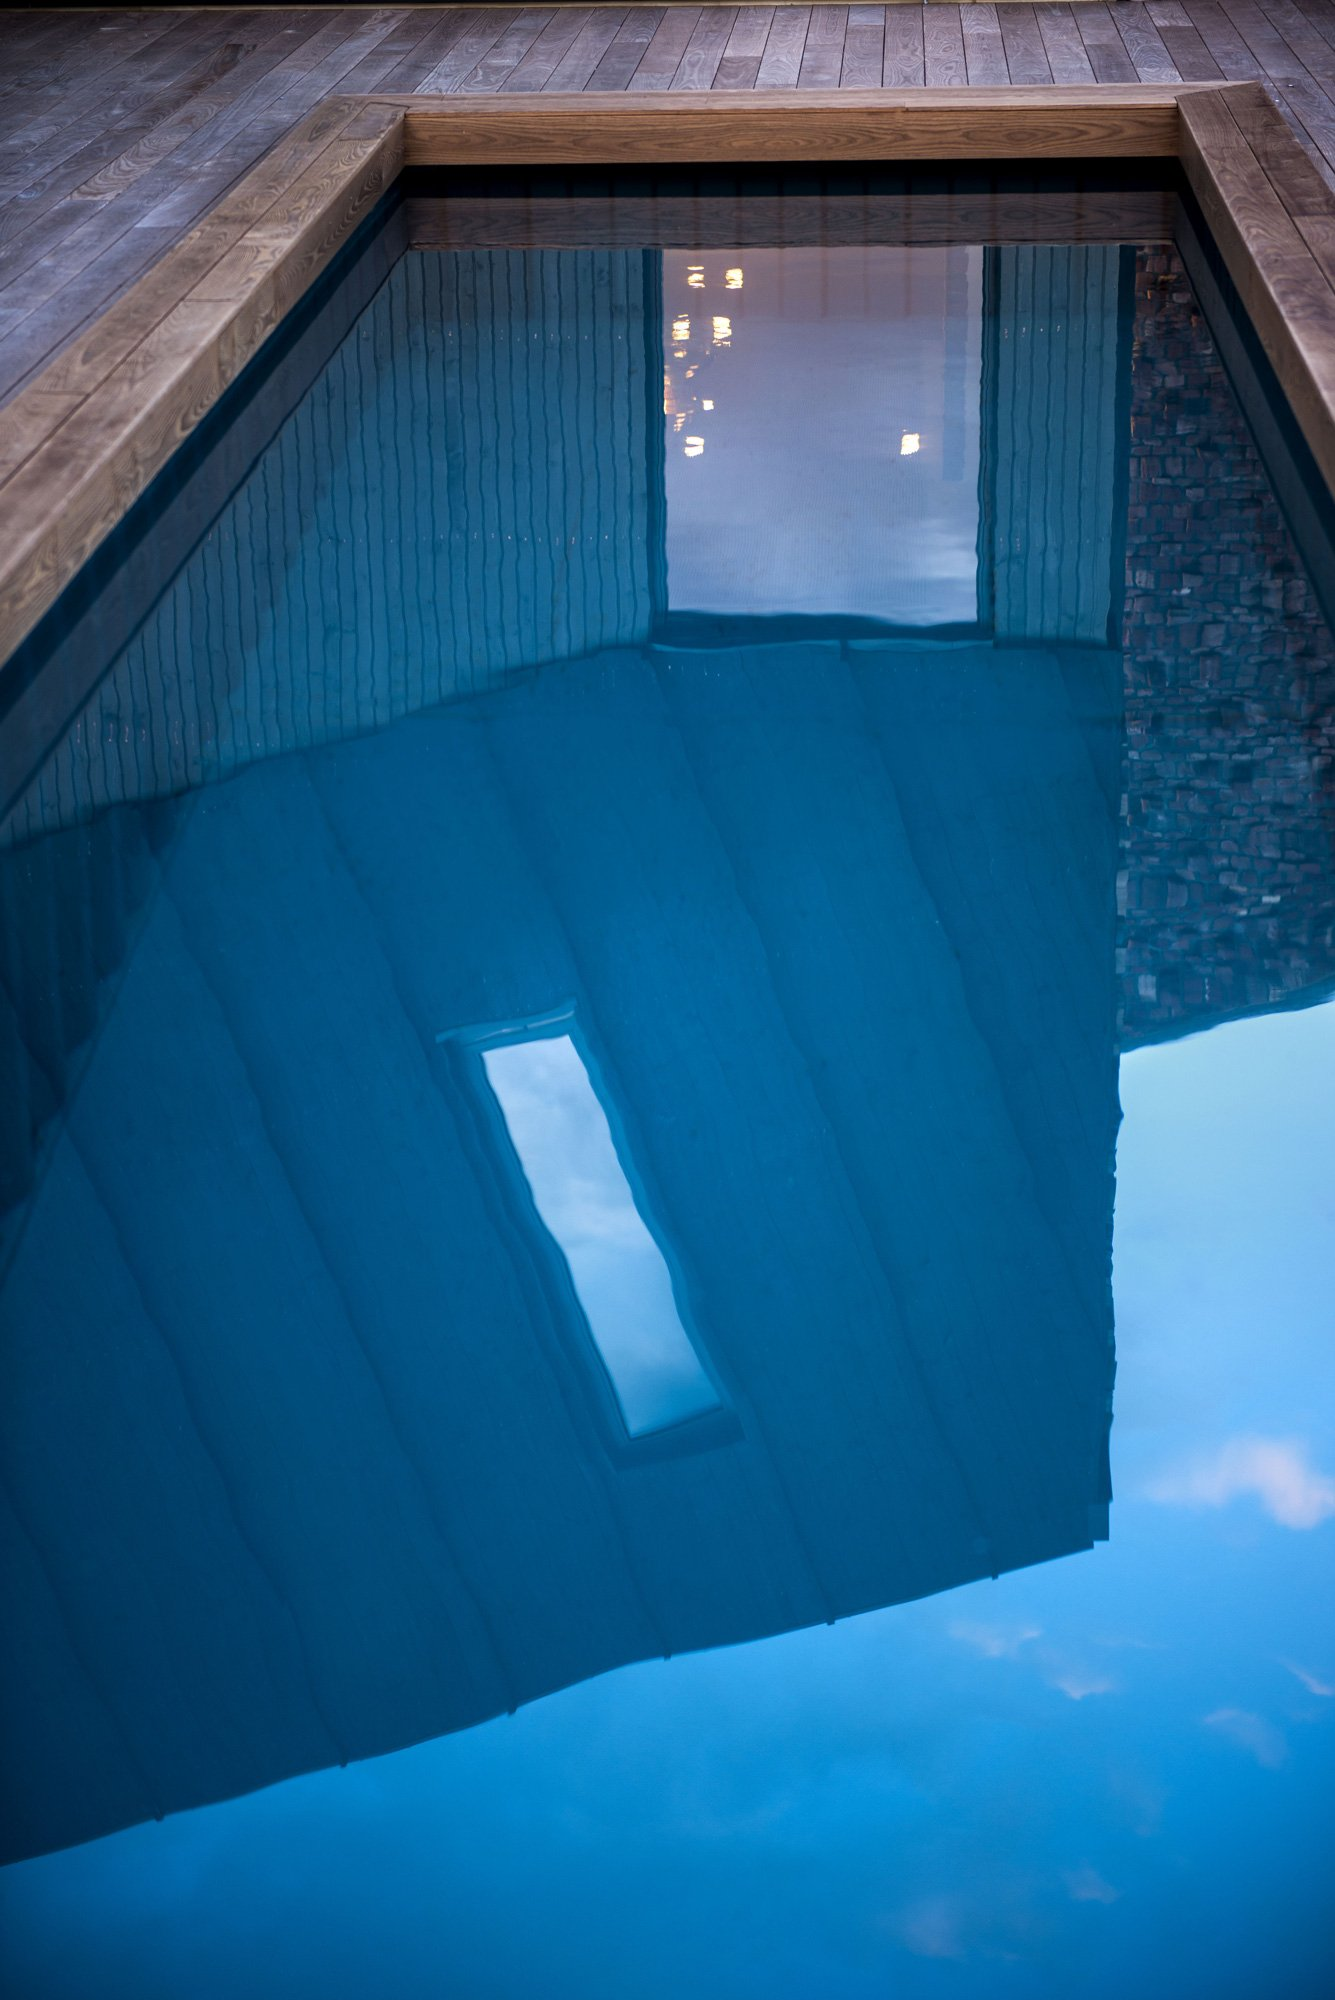 ZEB Pilot House by Snøhetta © Paal-André Schwital